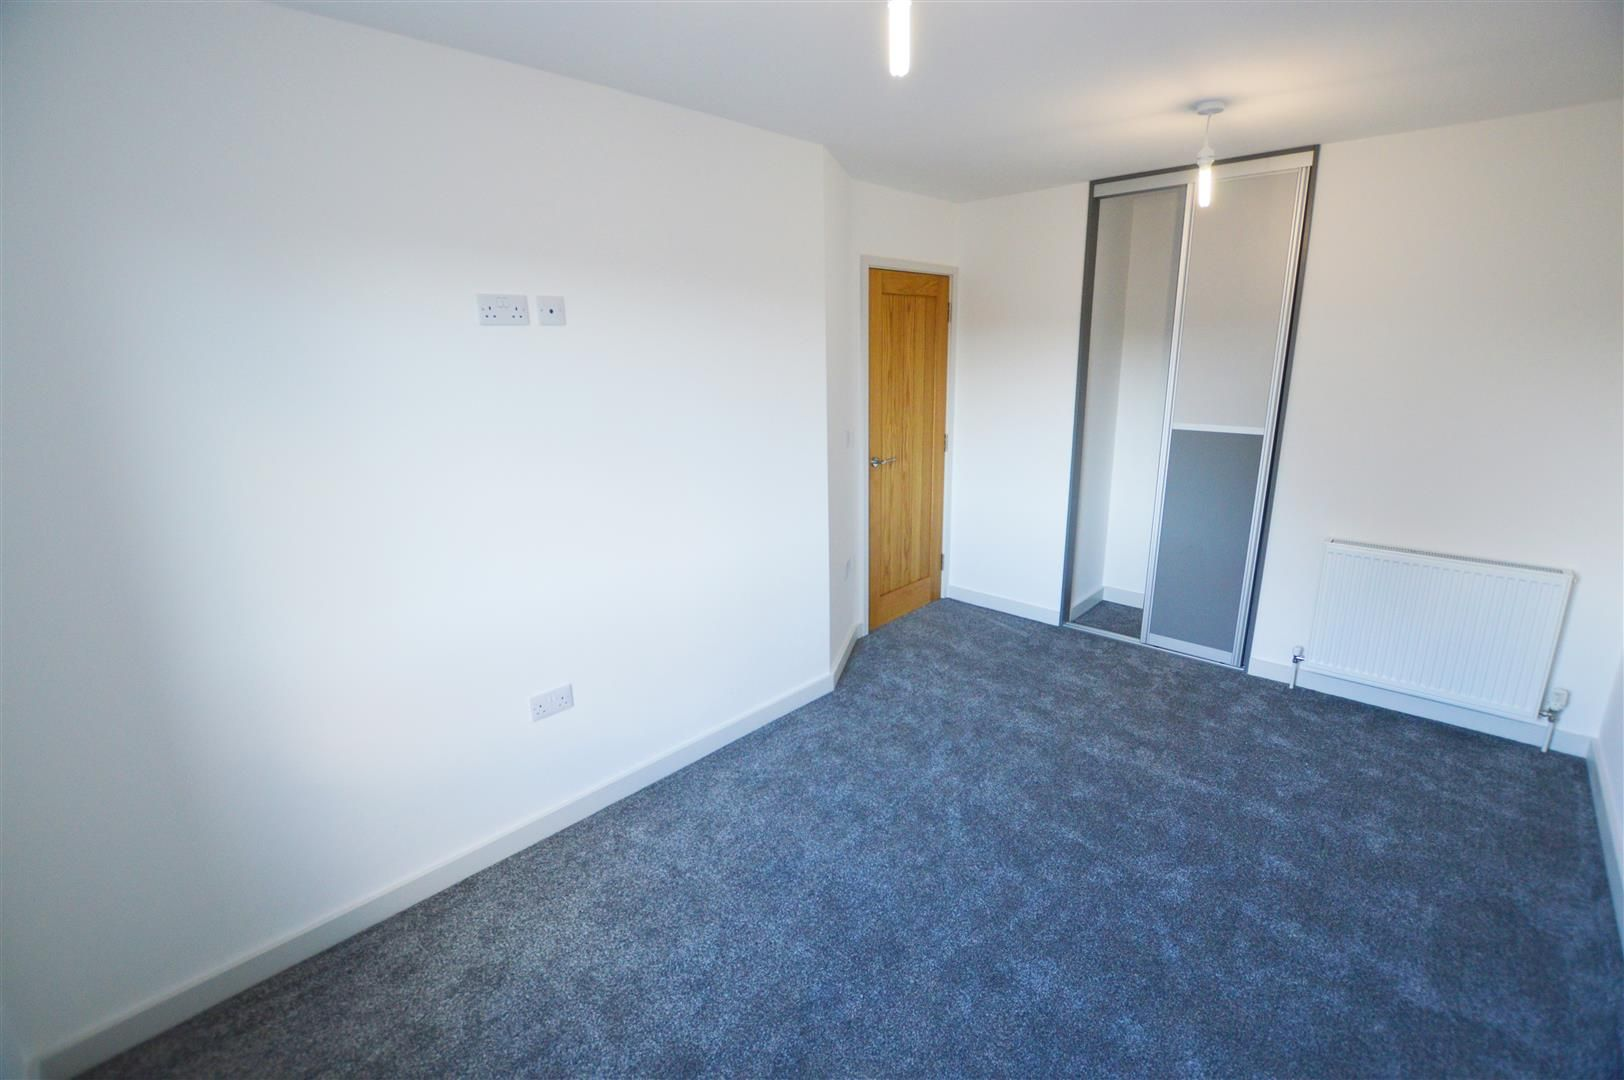 3 bed terraced for sale in Leominster  - Property Image 5